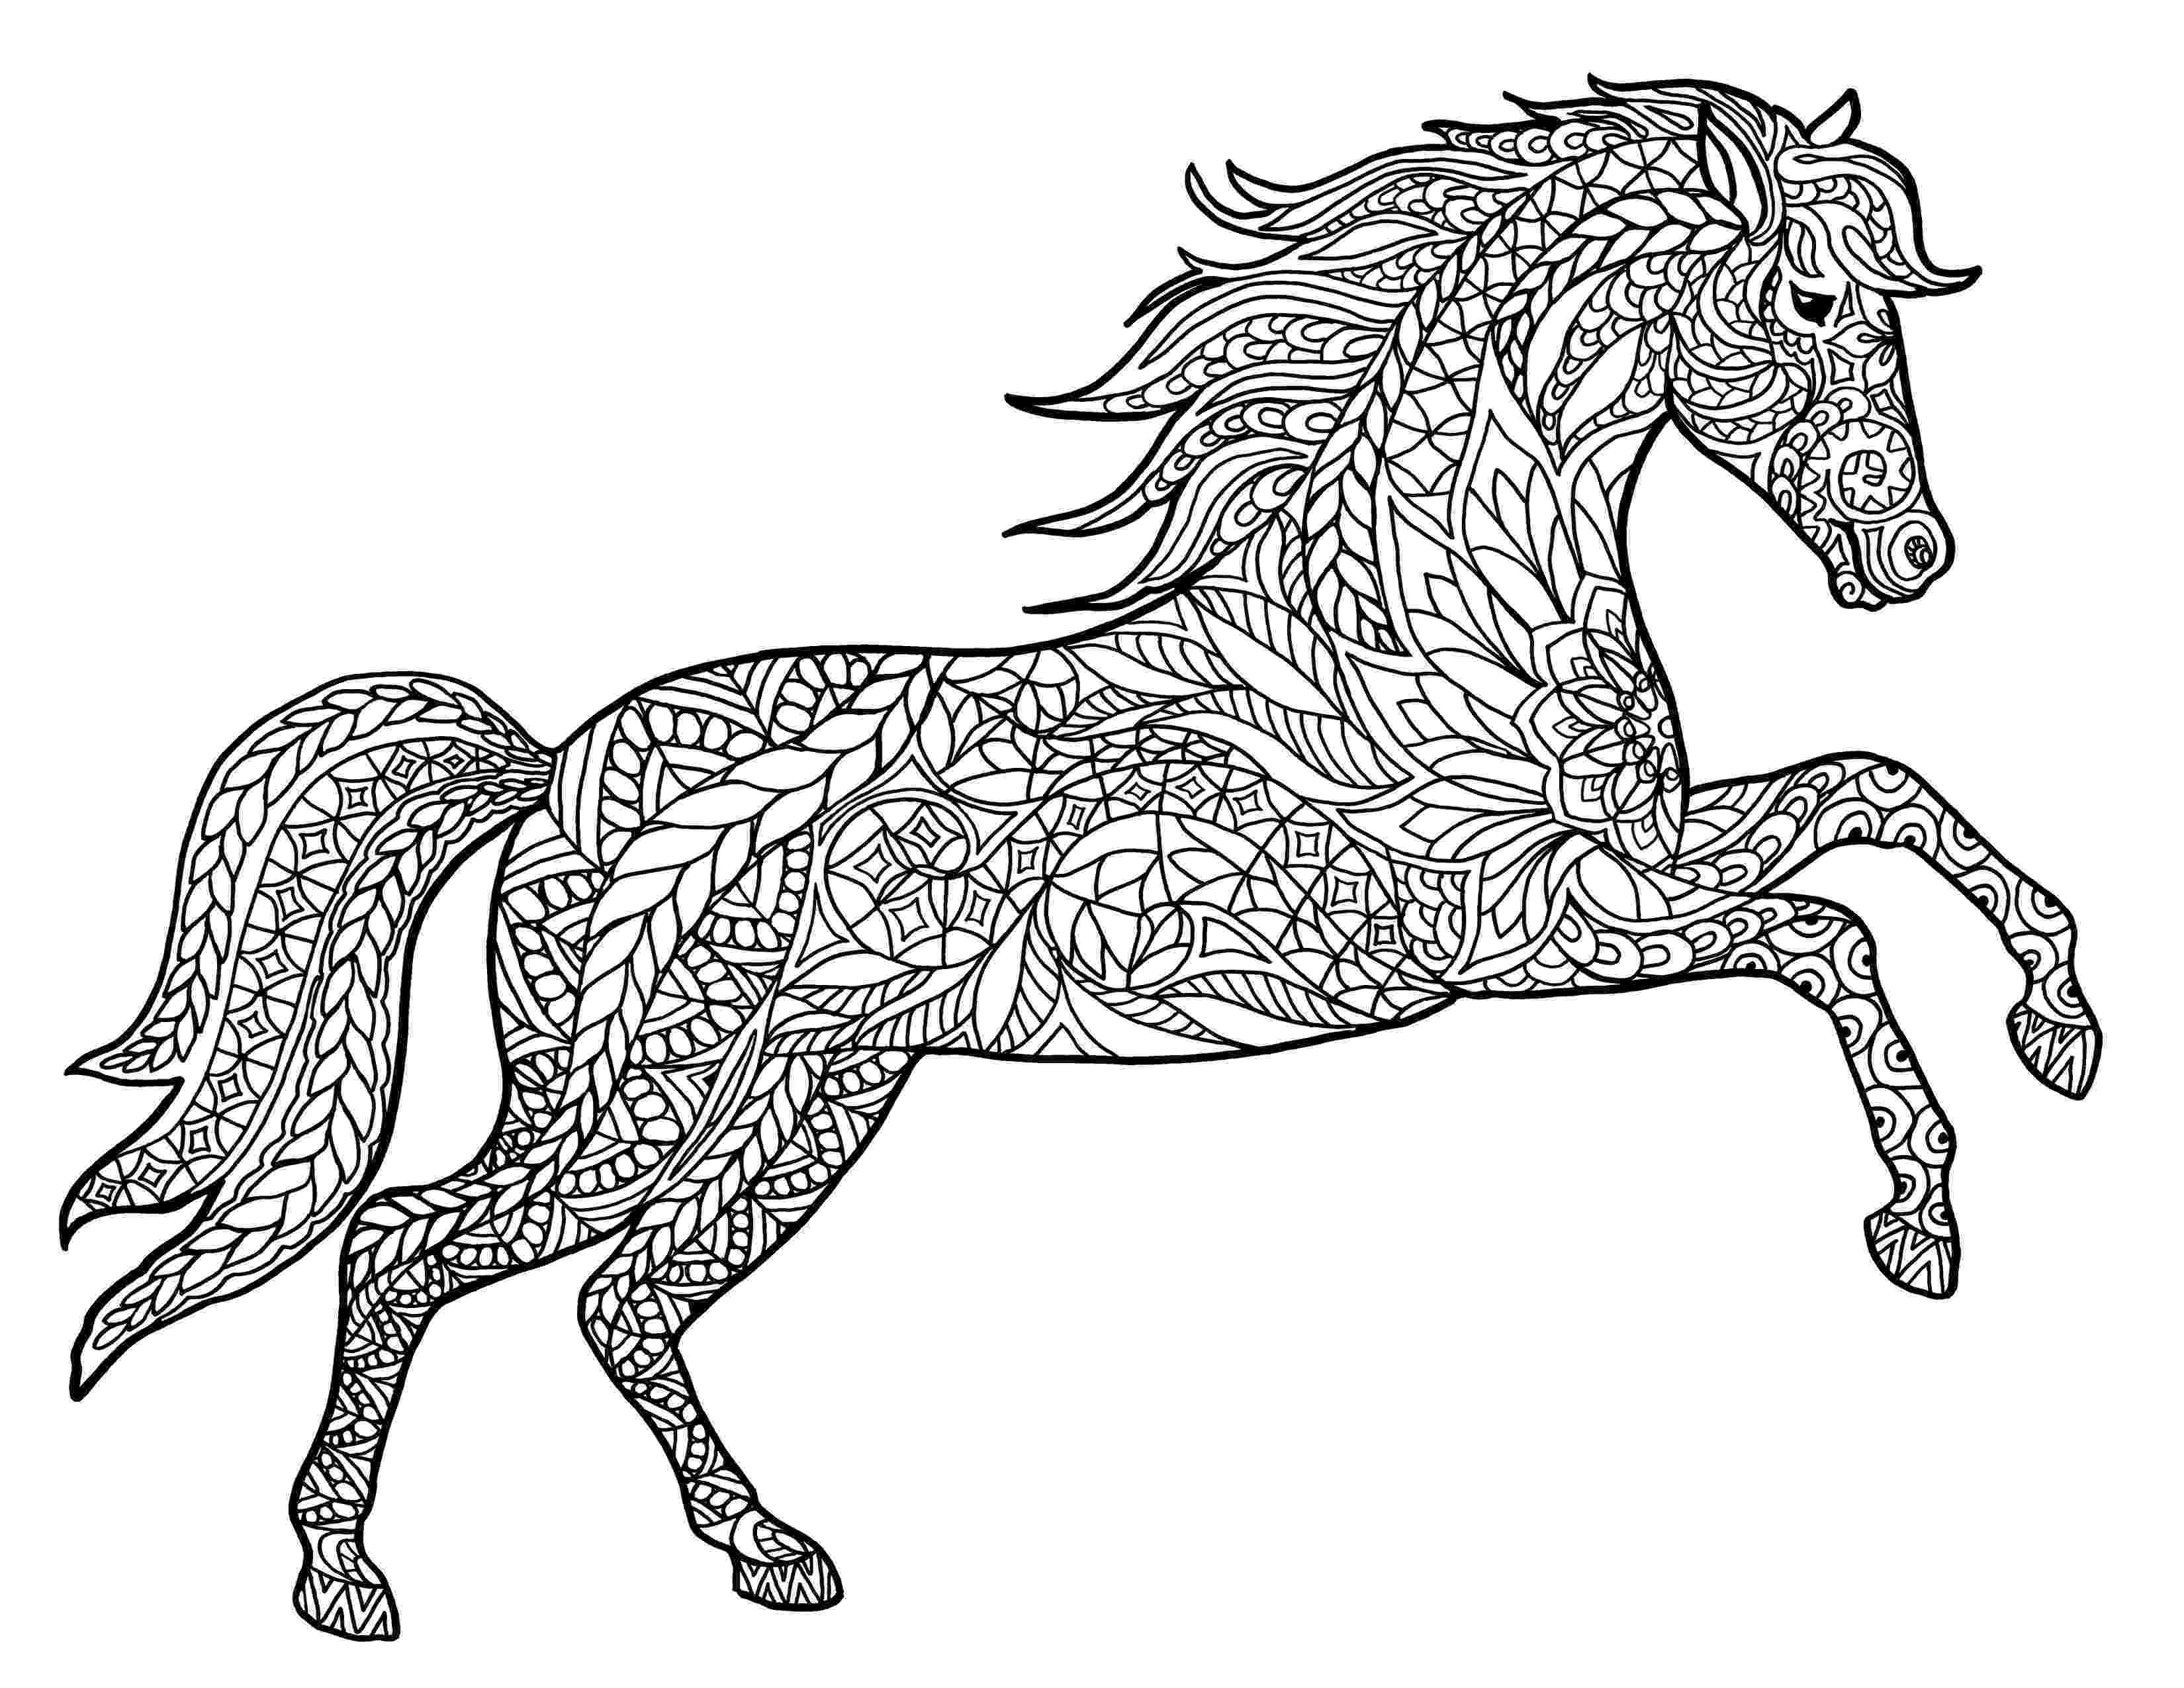 colouring pages animals to print free printable zoo coloring pages for kids colouring pages print animals to